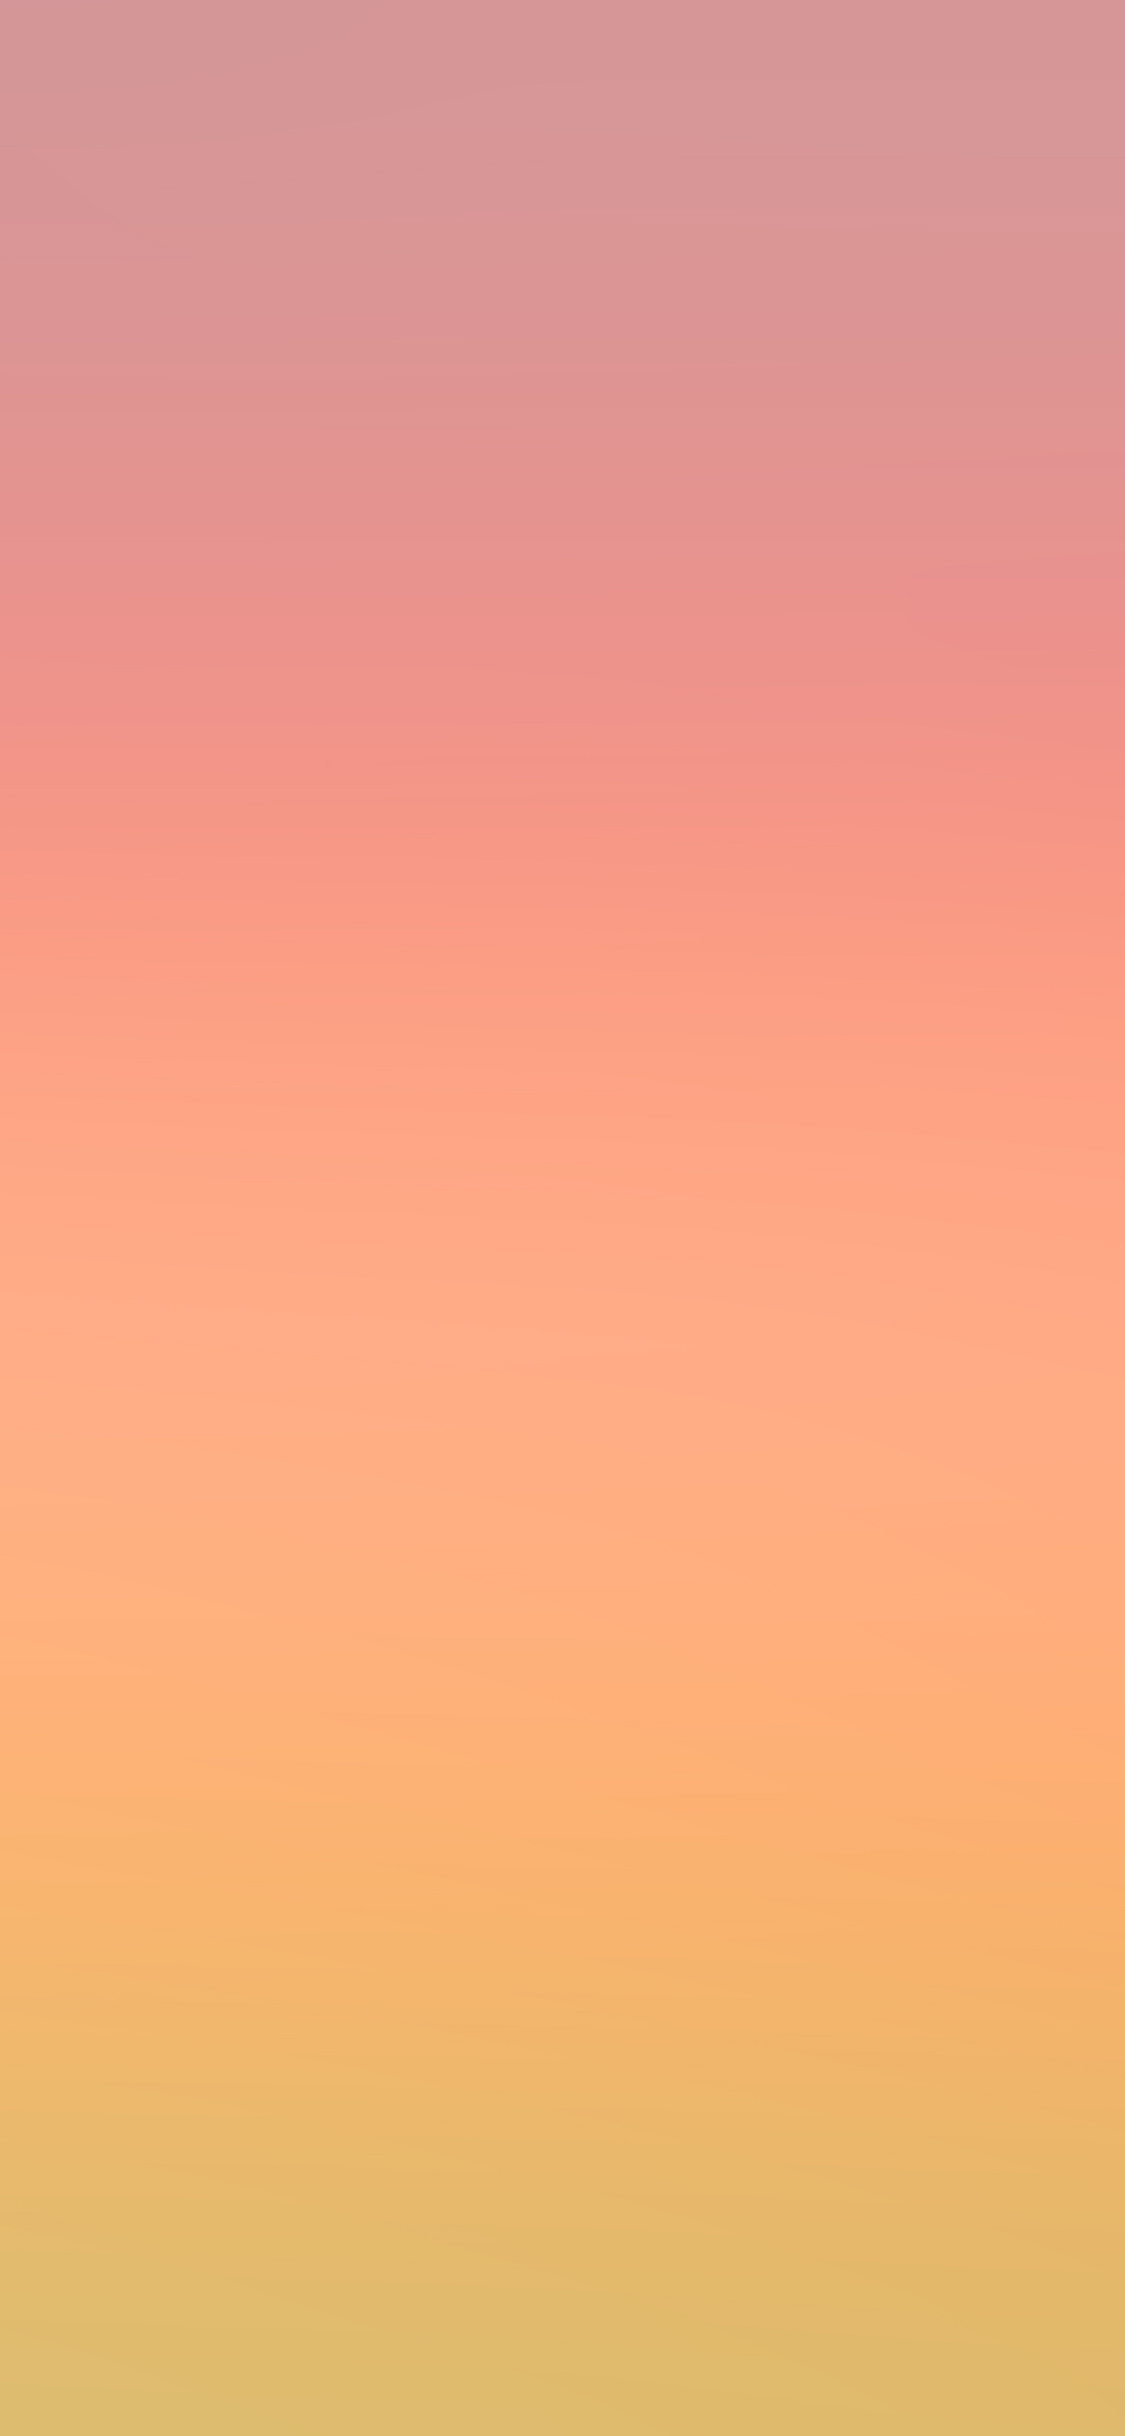 papers.co sk94 rainbow red green soft blur gradation 41 iphone wallpaper